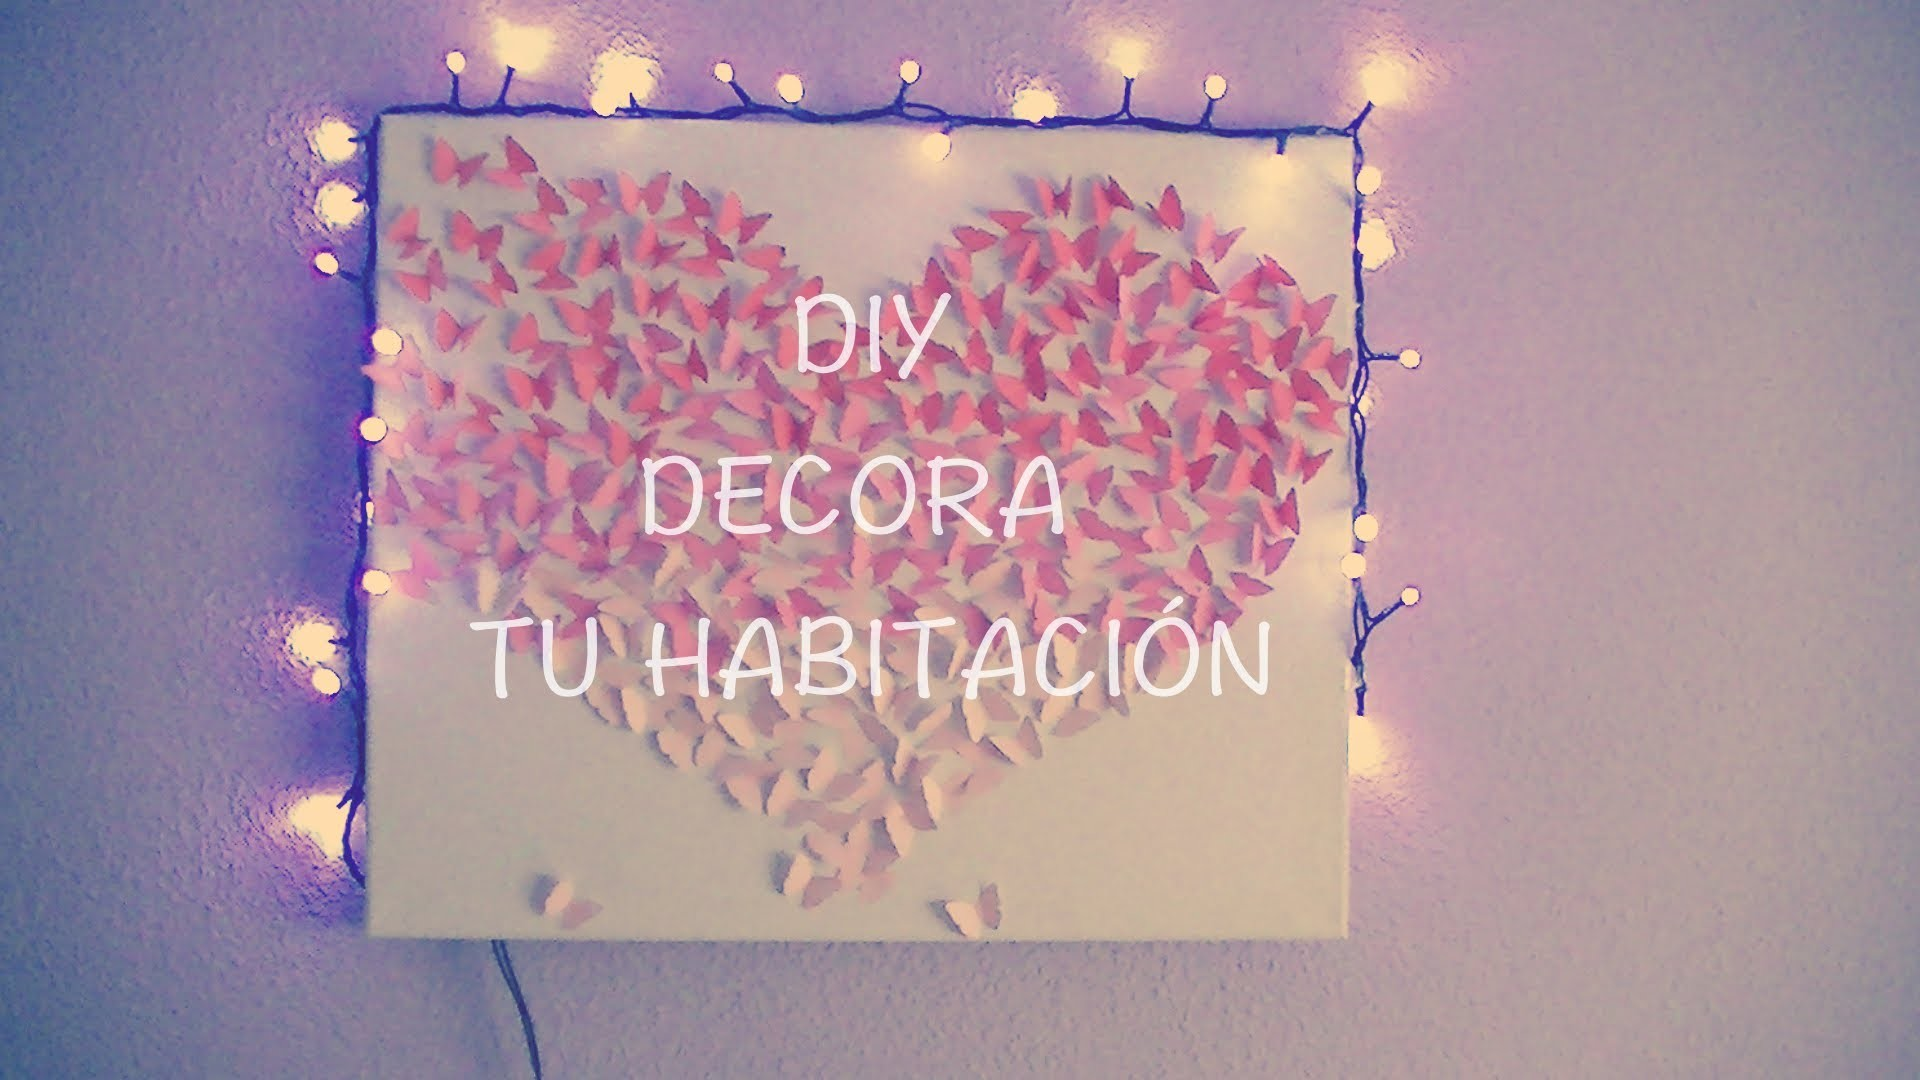 DIY ❤ ¡Decora tu habitación!. Room Decor